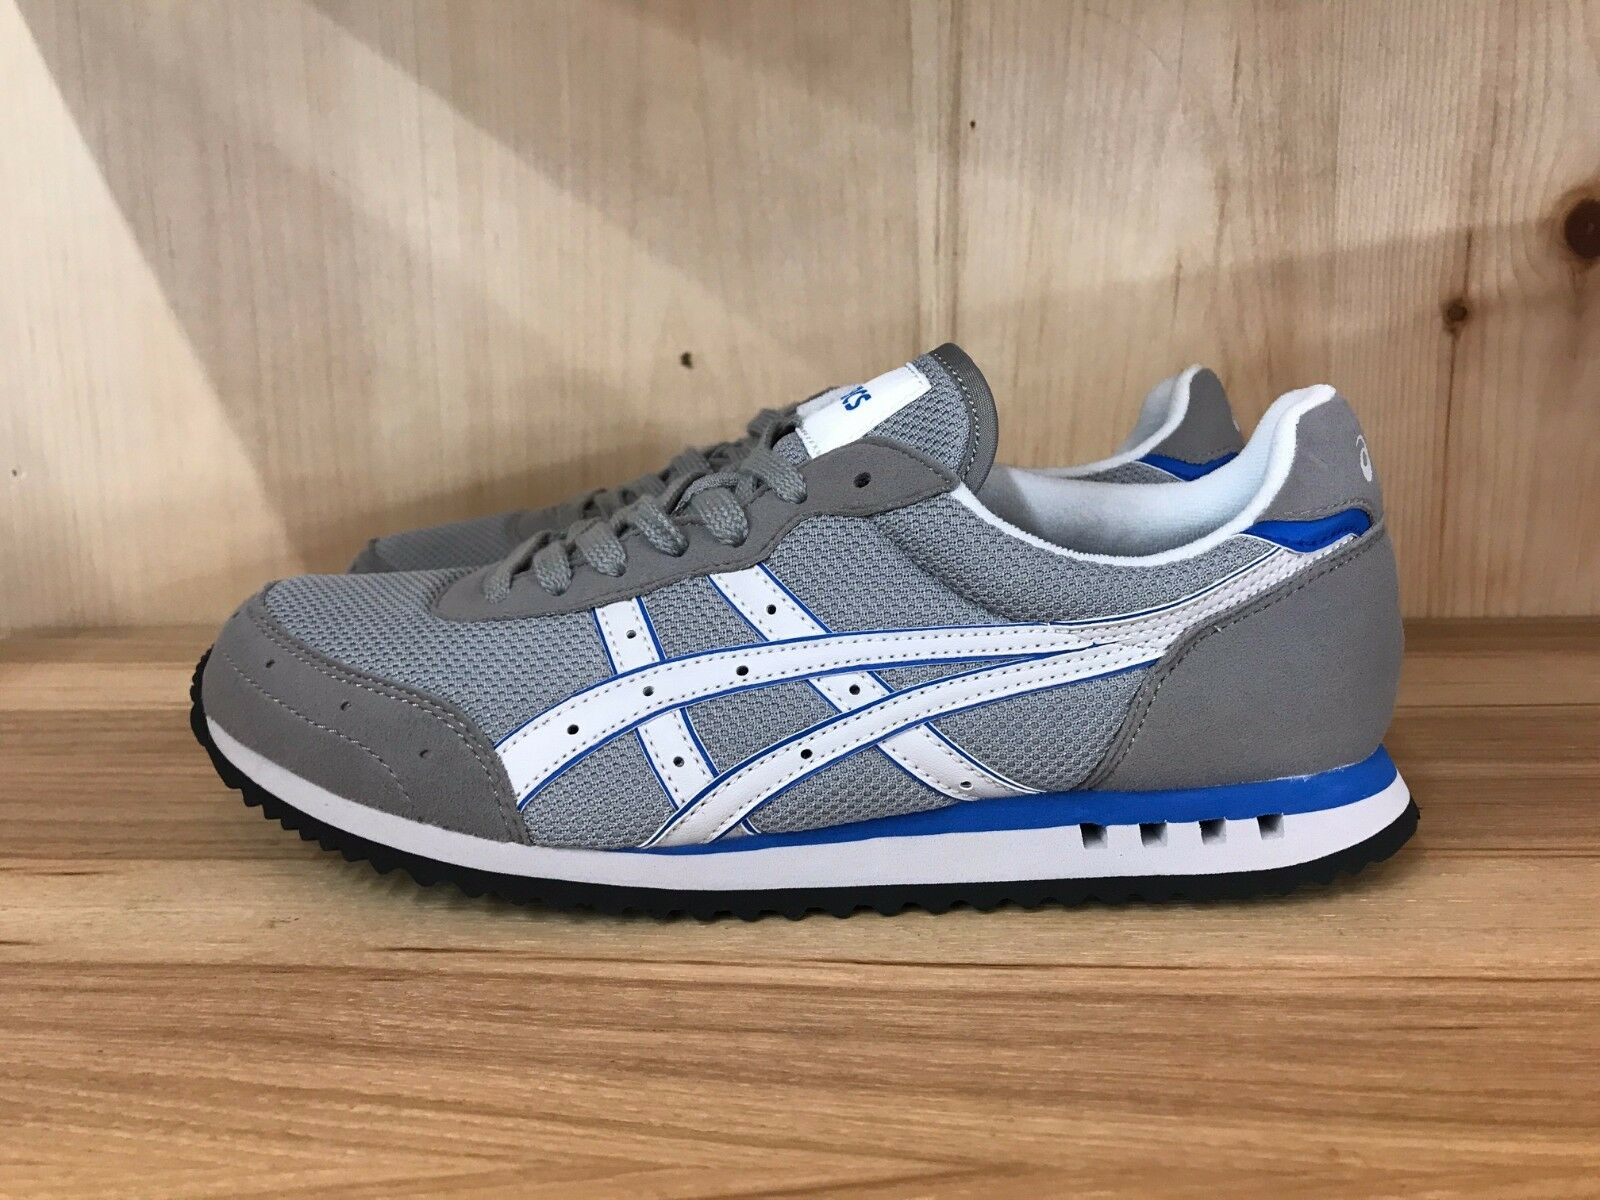 ASICS MATEO GREY WHITE blueE CASUAL RUNNING MENS  SZ 5-11  HQ80K-1101